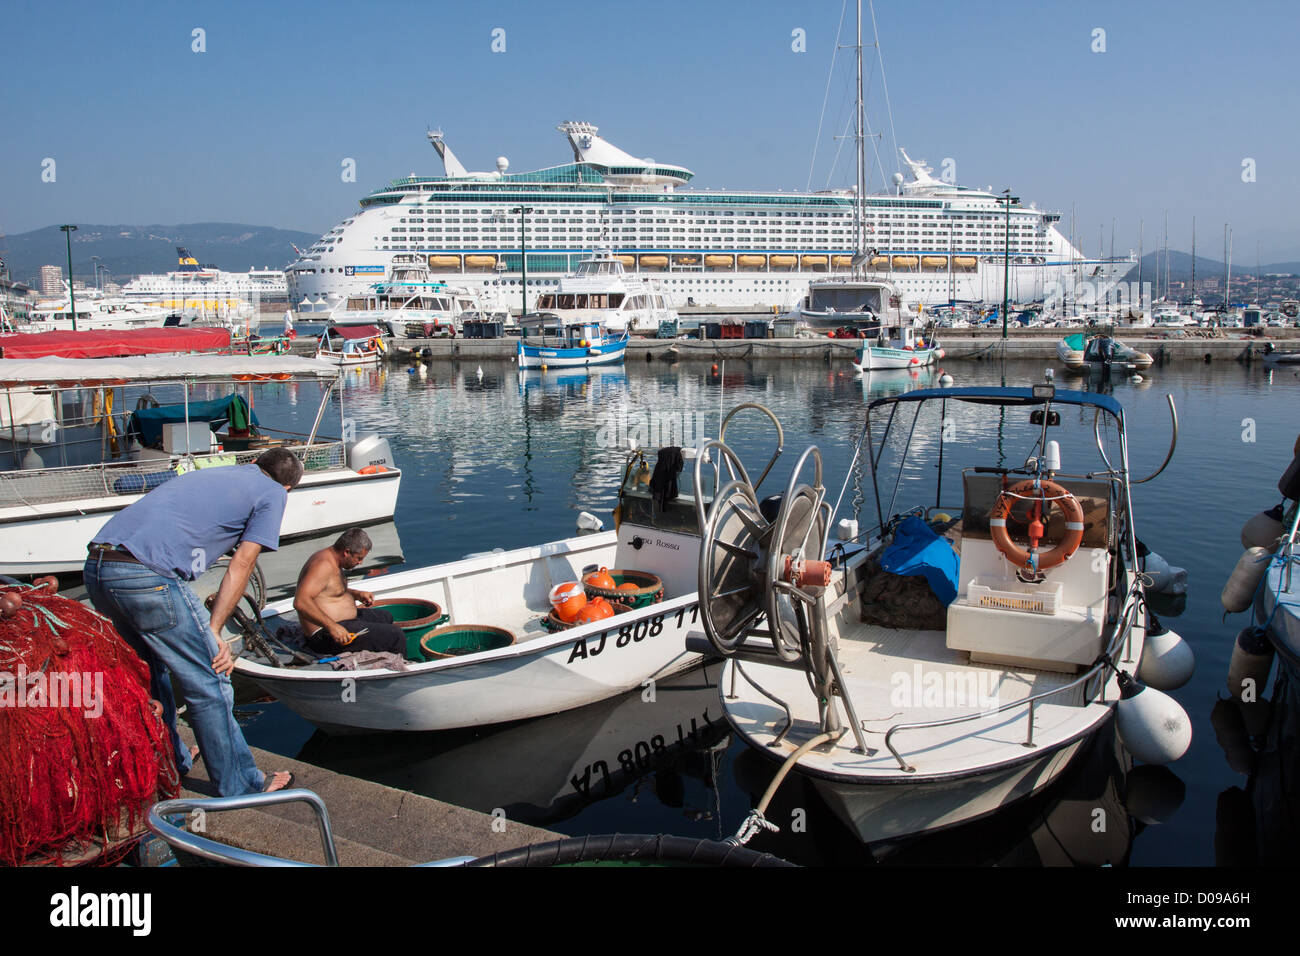 CONTRAST BETWEEN SMALL FISHING BOATS IMMENSE CRUISE SHIP FROM COMPANY ROYAL CARIBBEAN INTERNATIONAL PORT AJACCIO - Stock Image